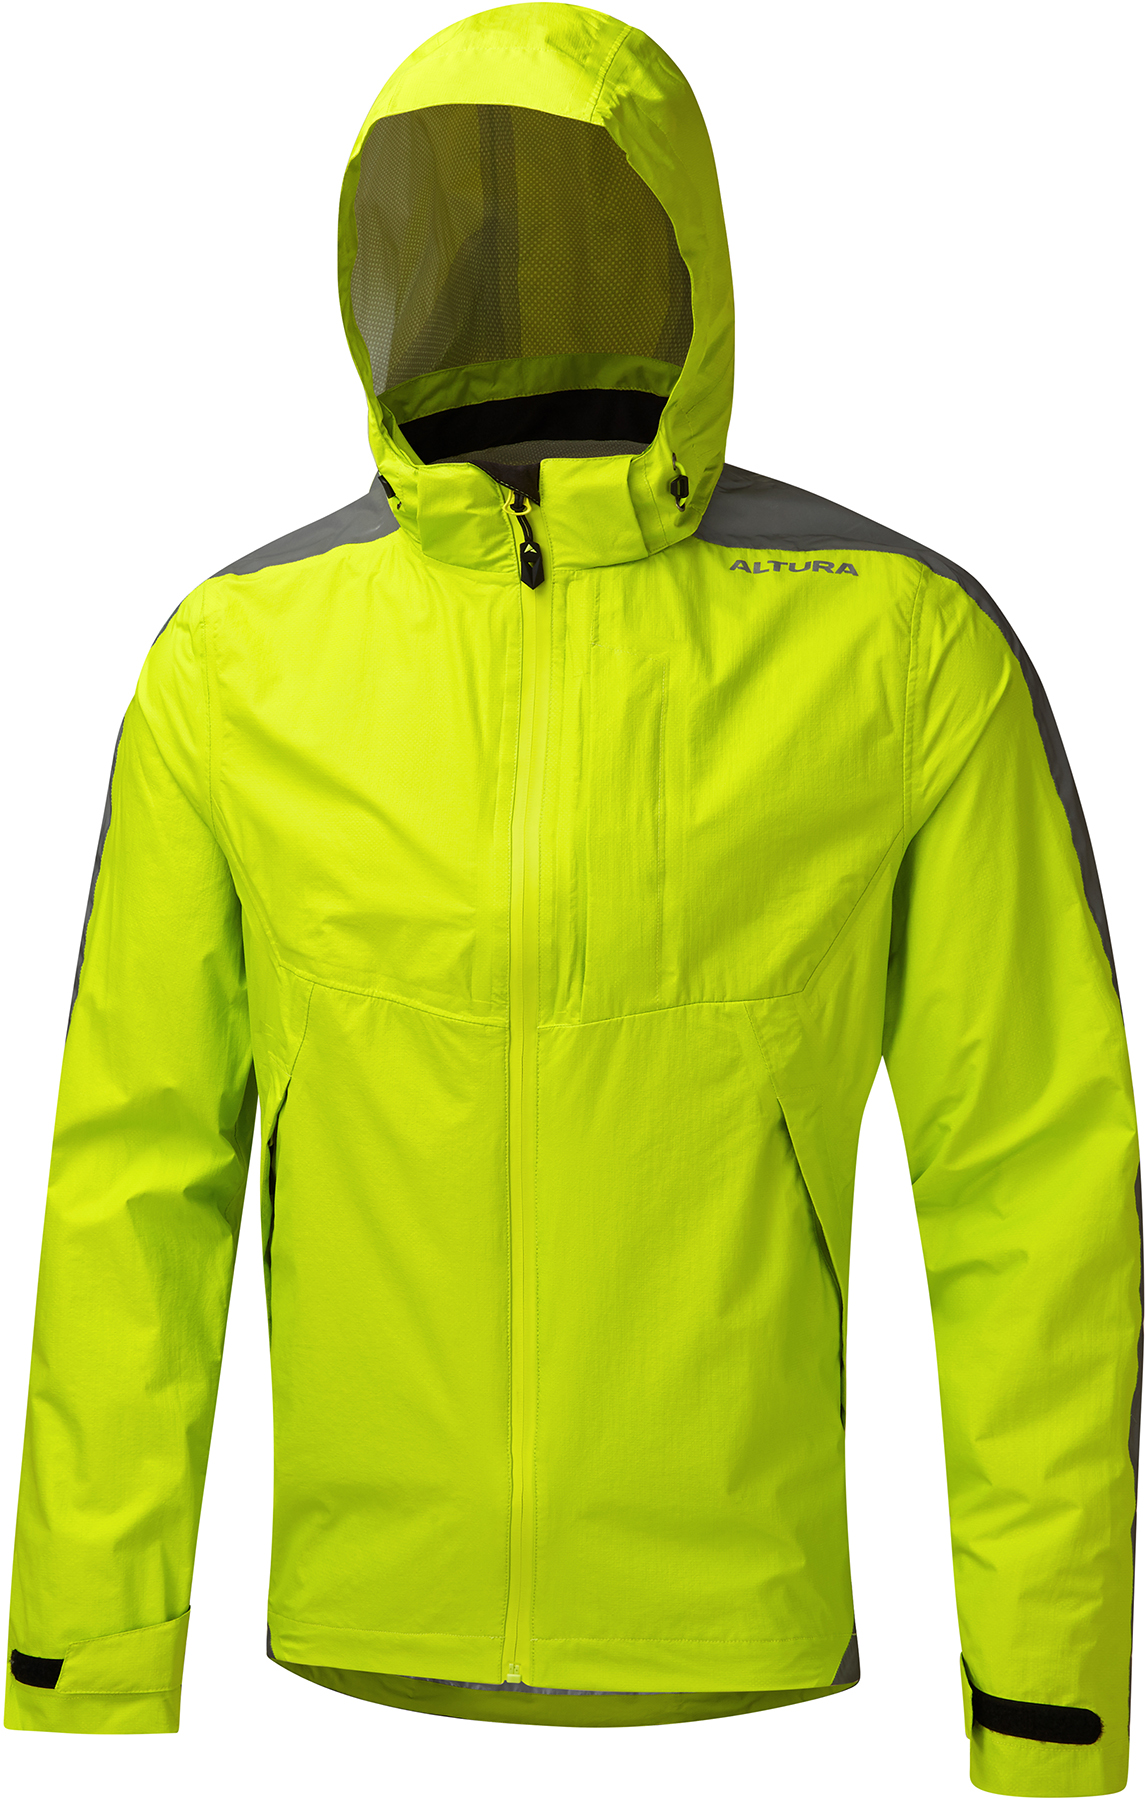 Altura - Nightvision Typhoon | cycling jacket